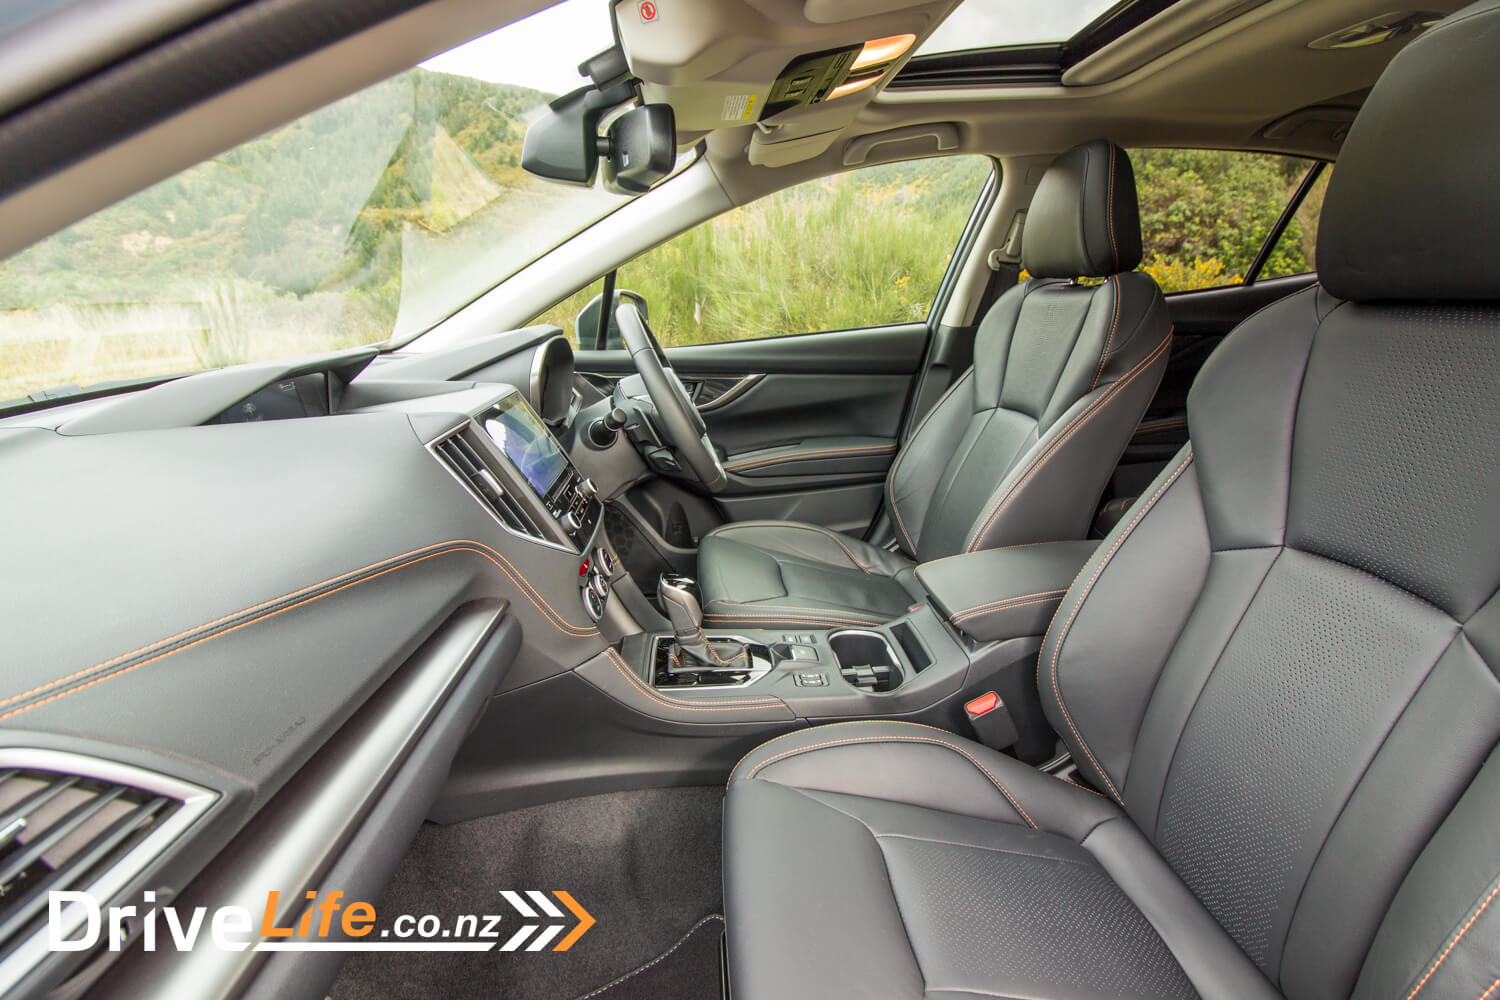 2017 Subaru Xv Car Review Function Over Form Drivelife Drivelife